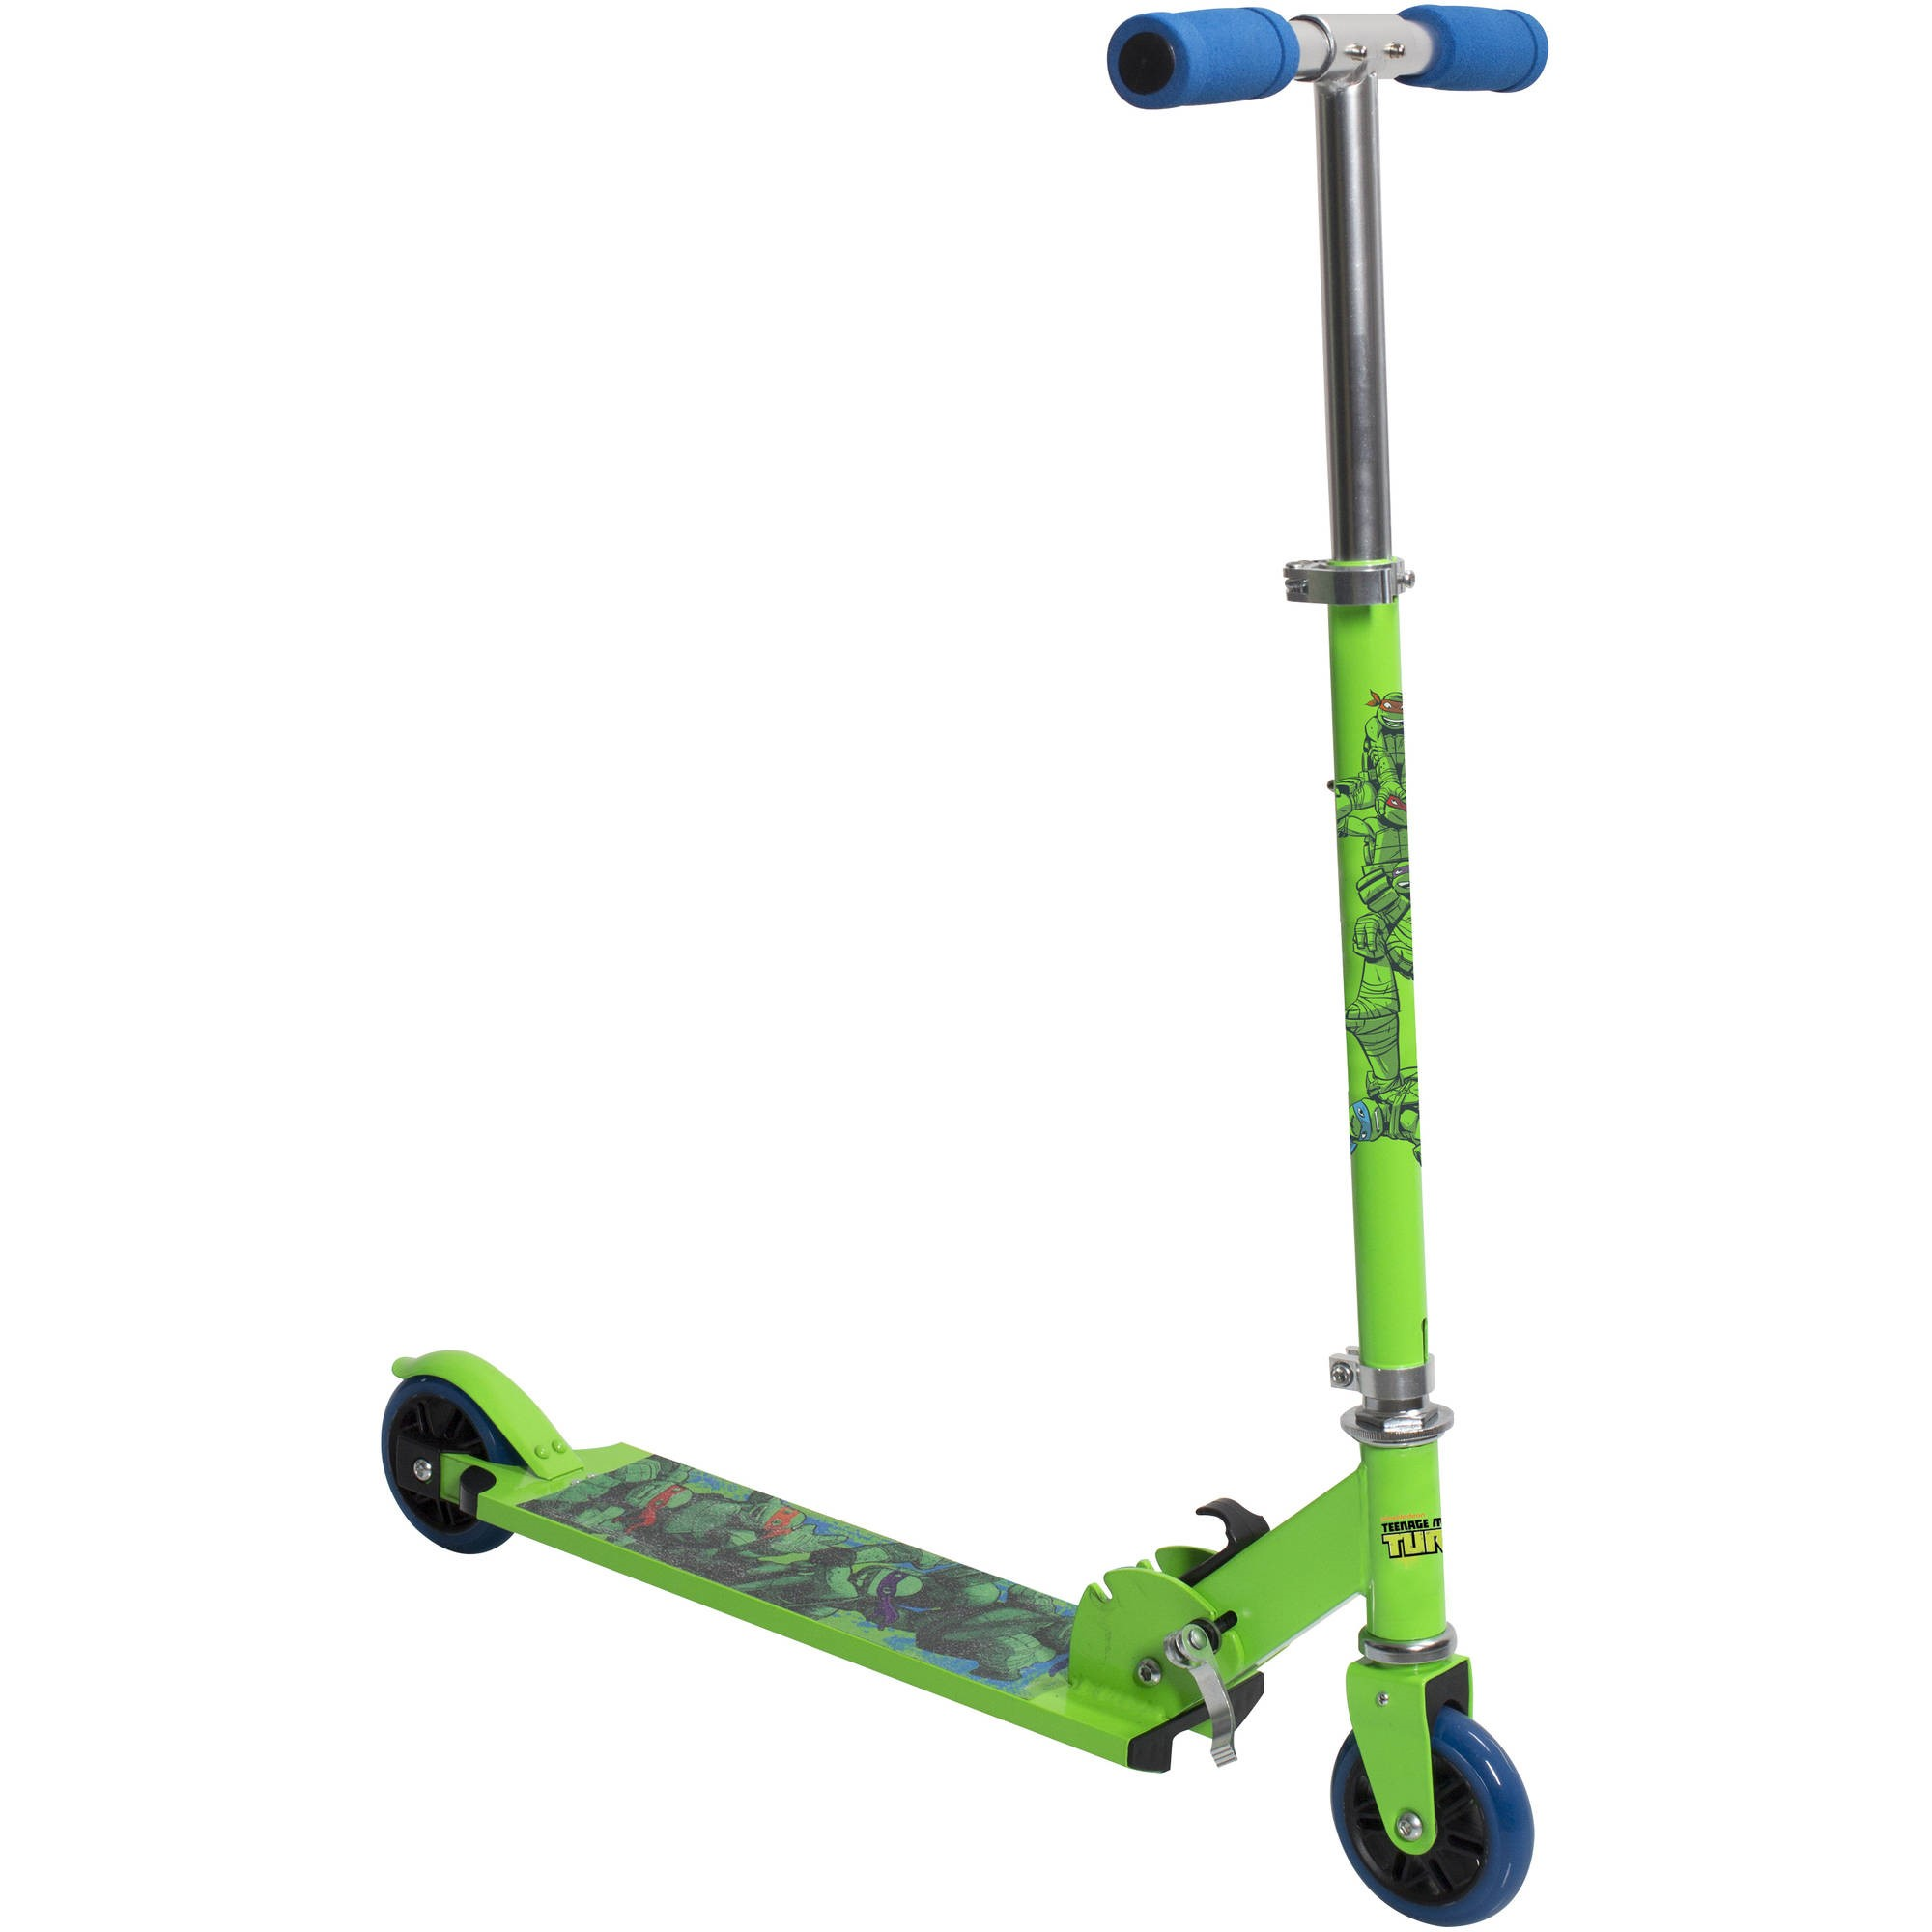 Teenage Mutant Ninja Turtles Aluminum Folding Scooter by Generic